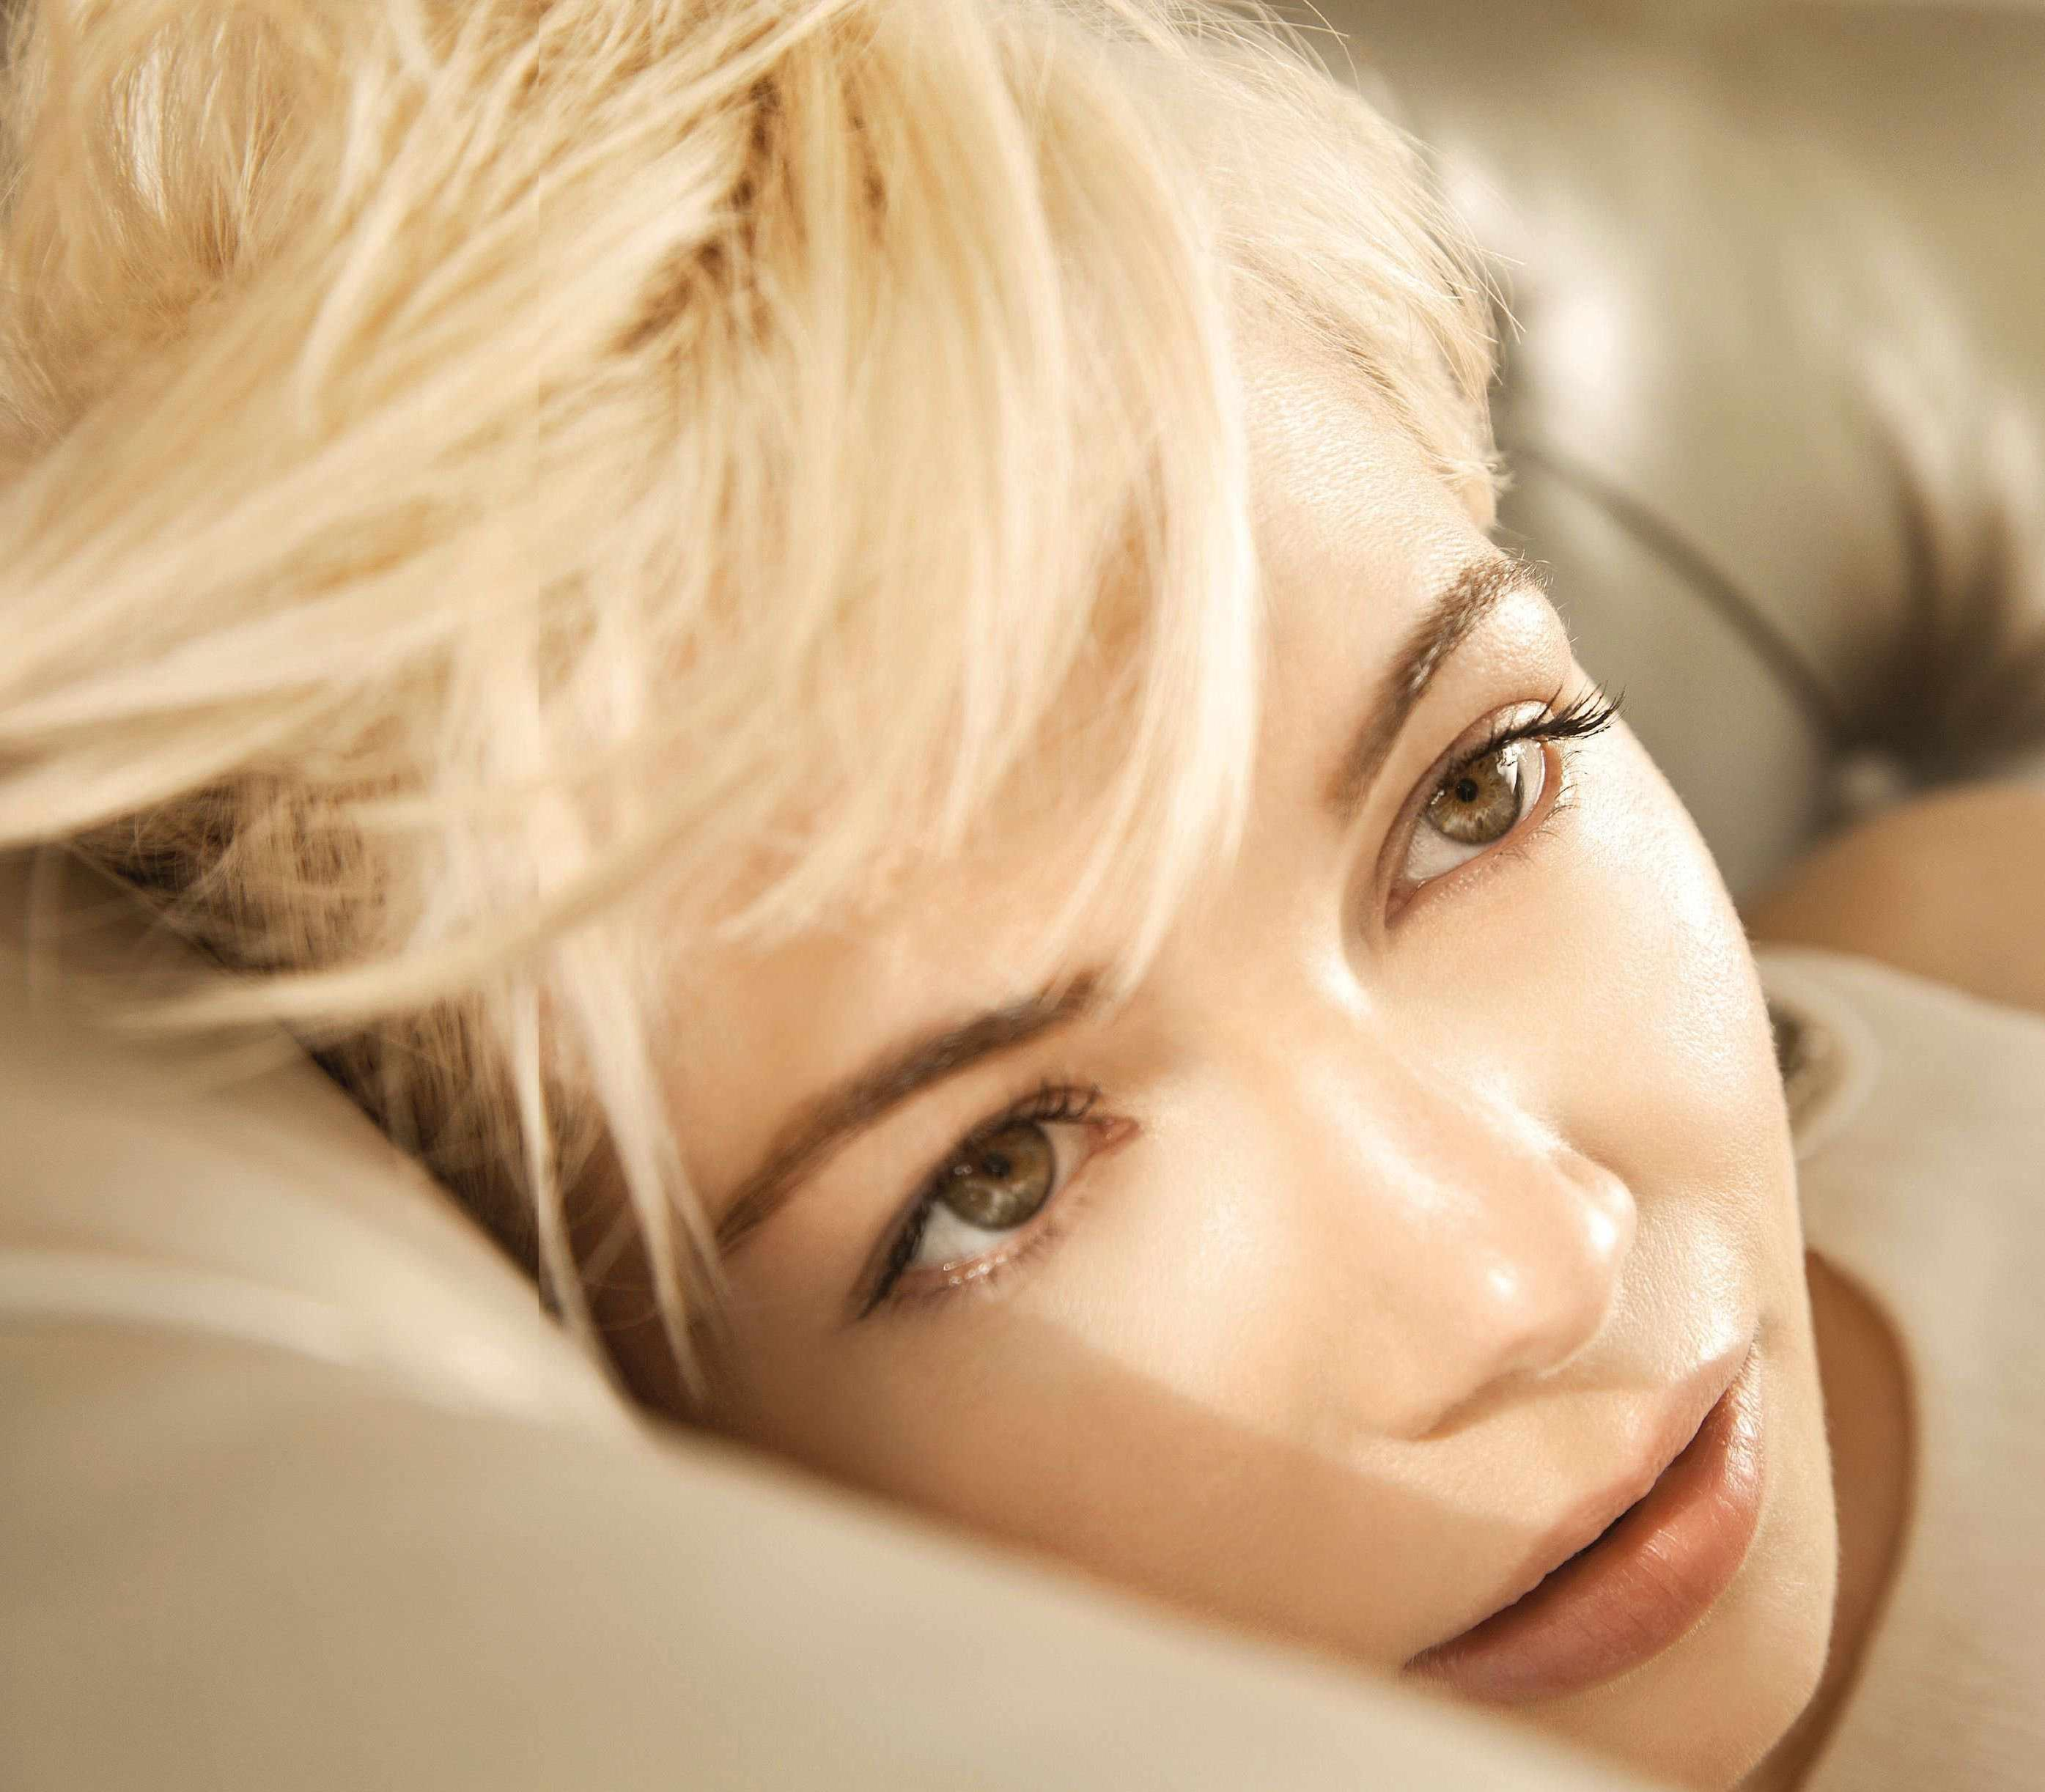 Michelle williams face wallpaper pictures 53738 2790x2445 px michelle williams face wallpaper pictures 53738 voltagebd Image collections